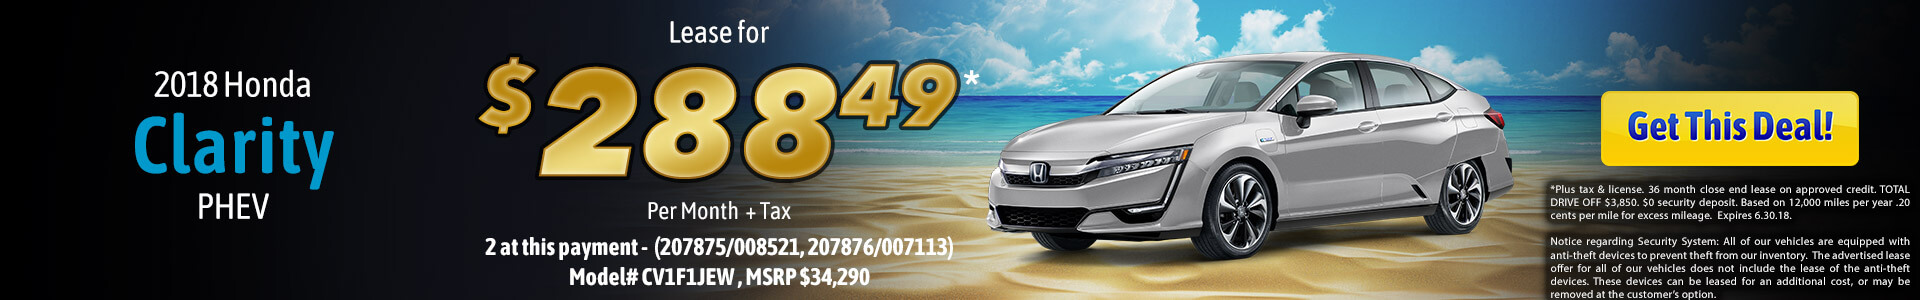 Clarity Lease $288.49